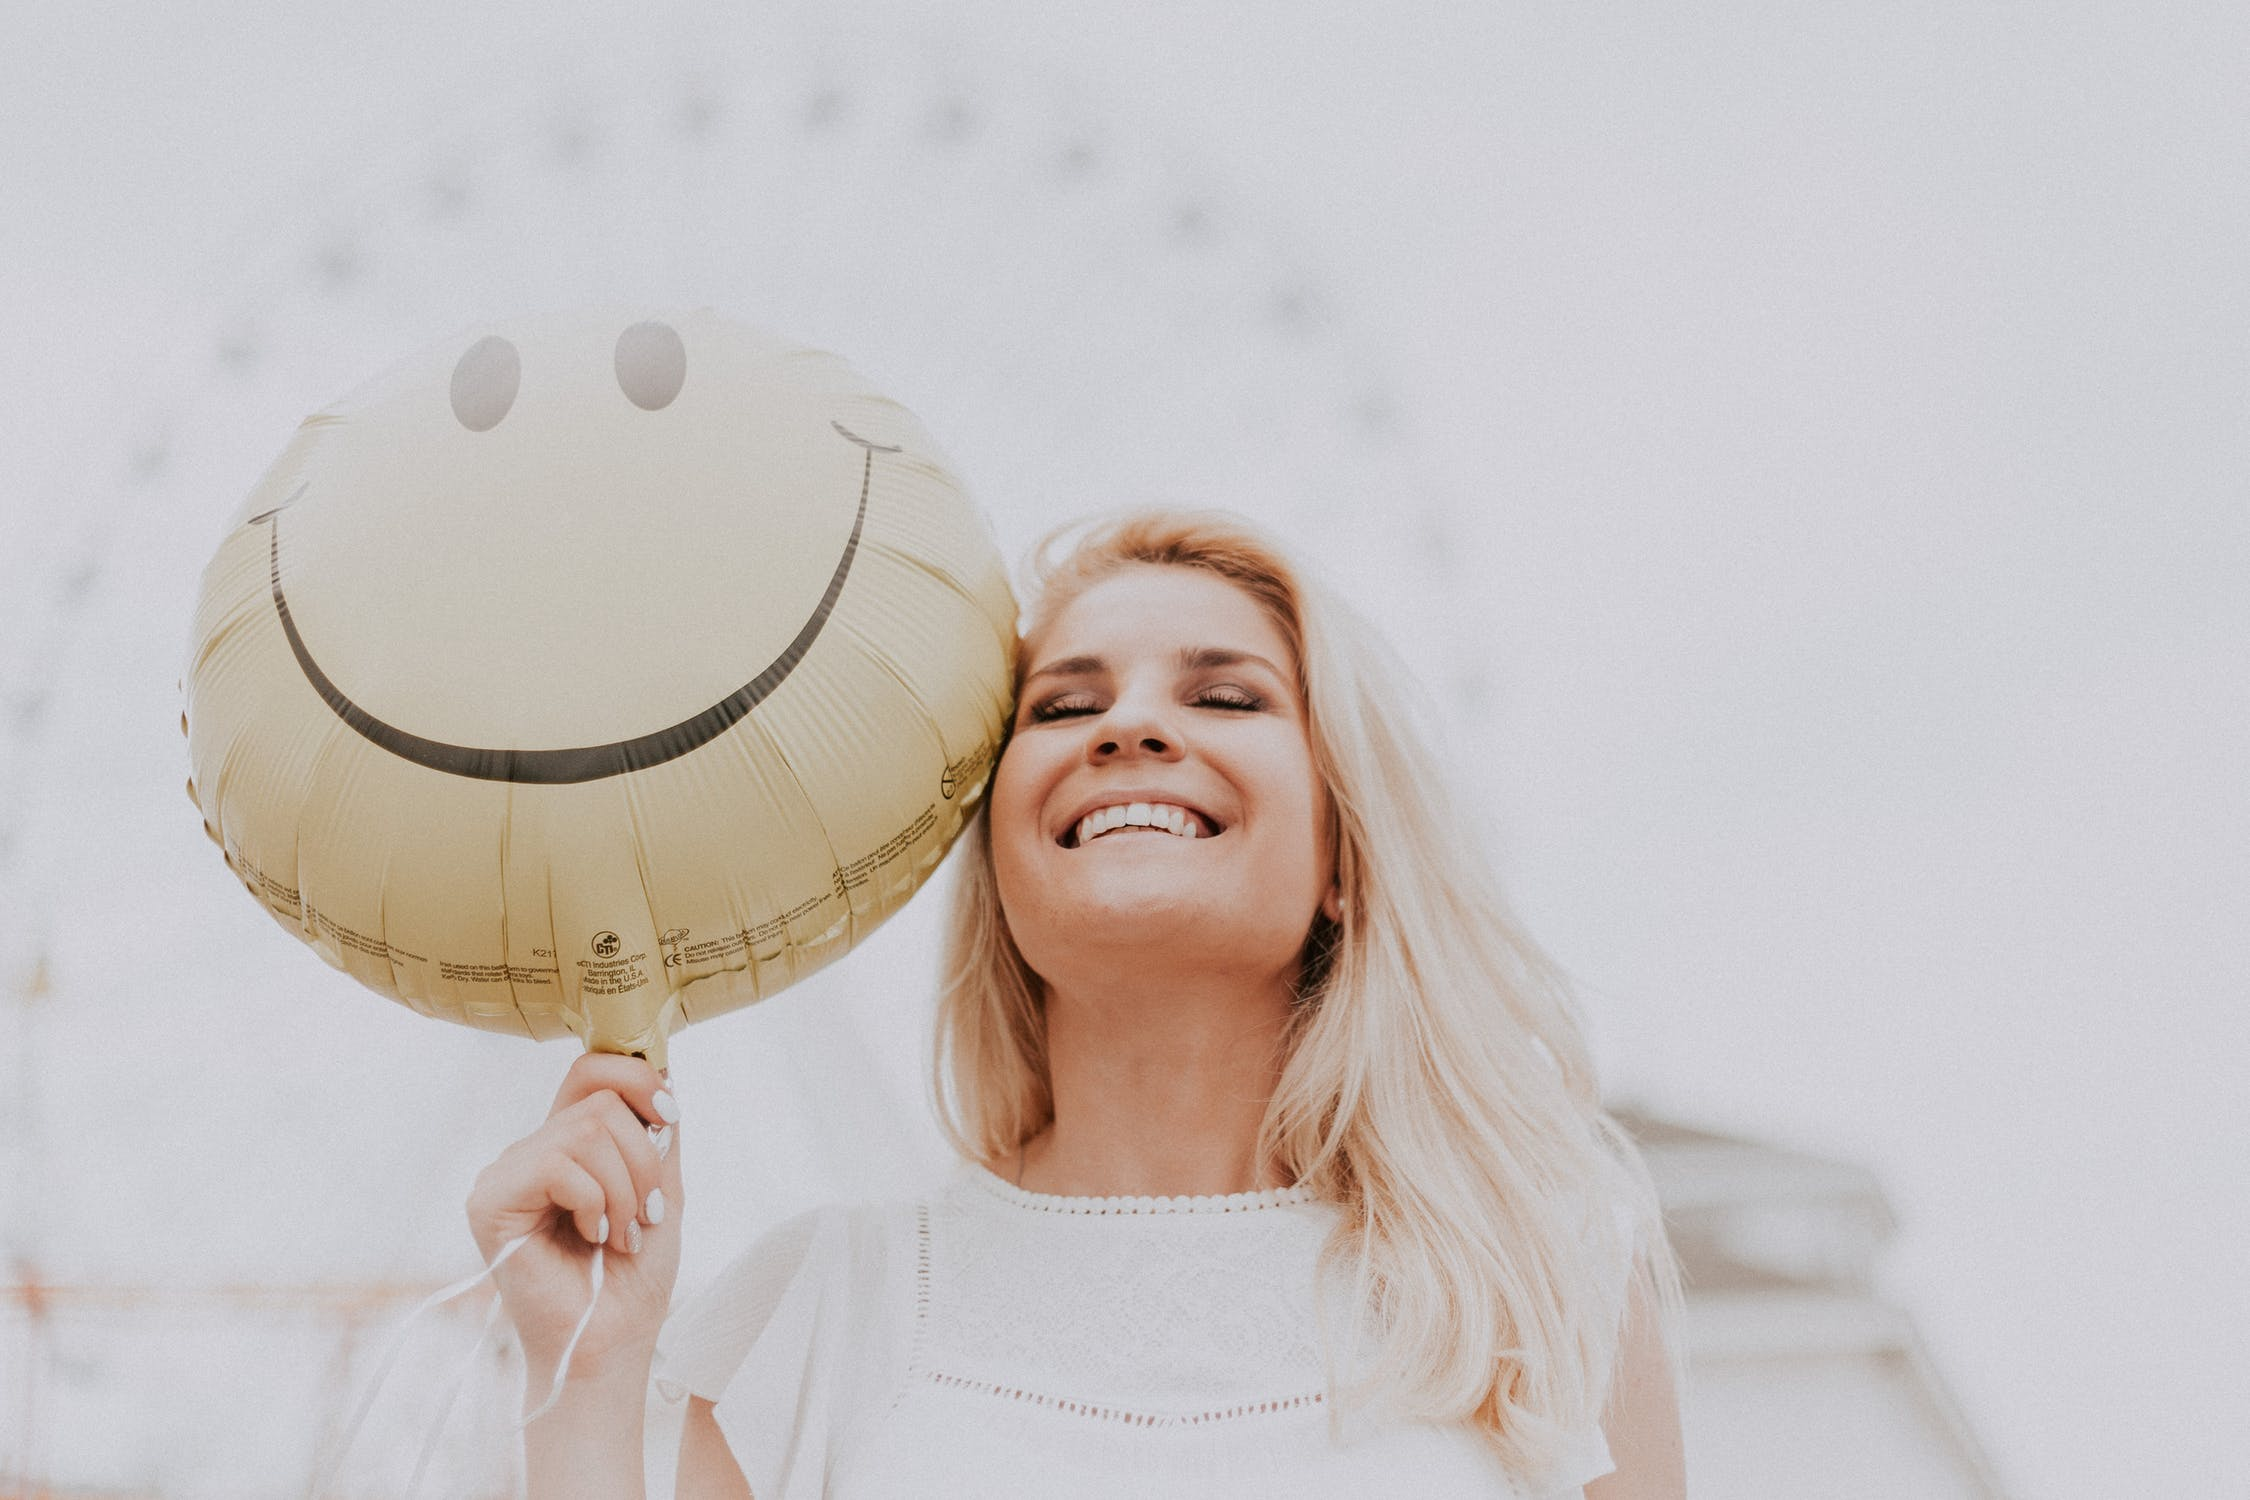 6 More Ways To Bring Some Happiness Into Your Life